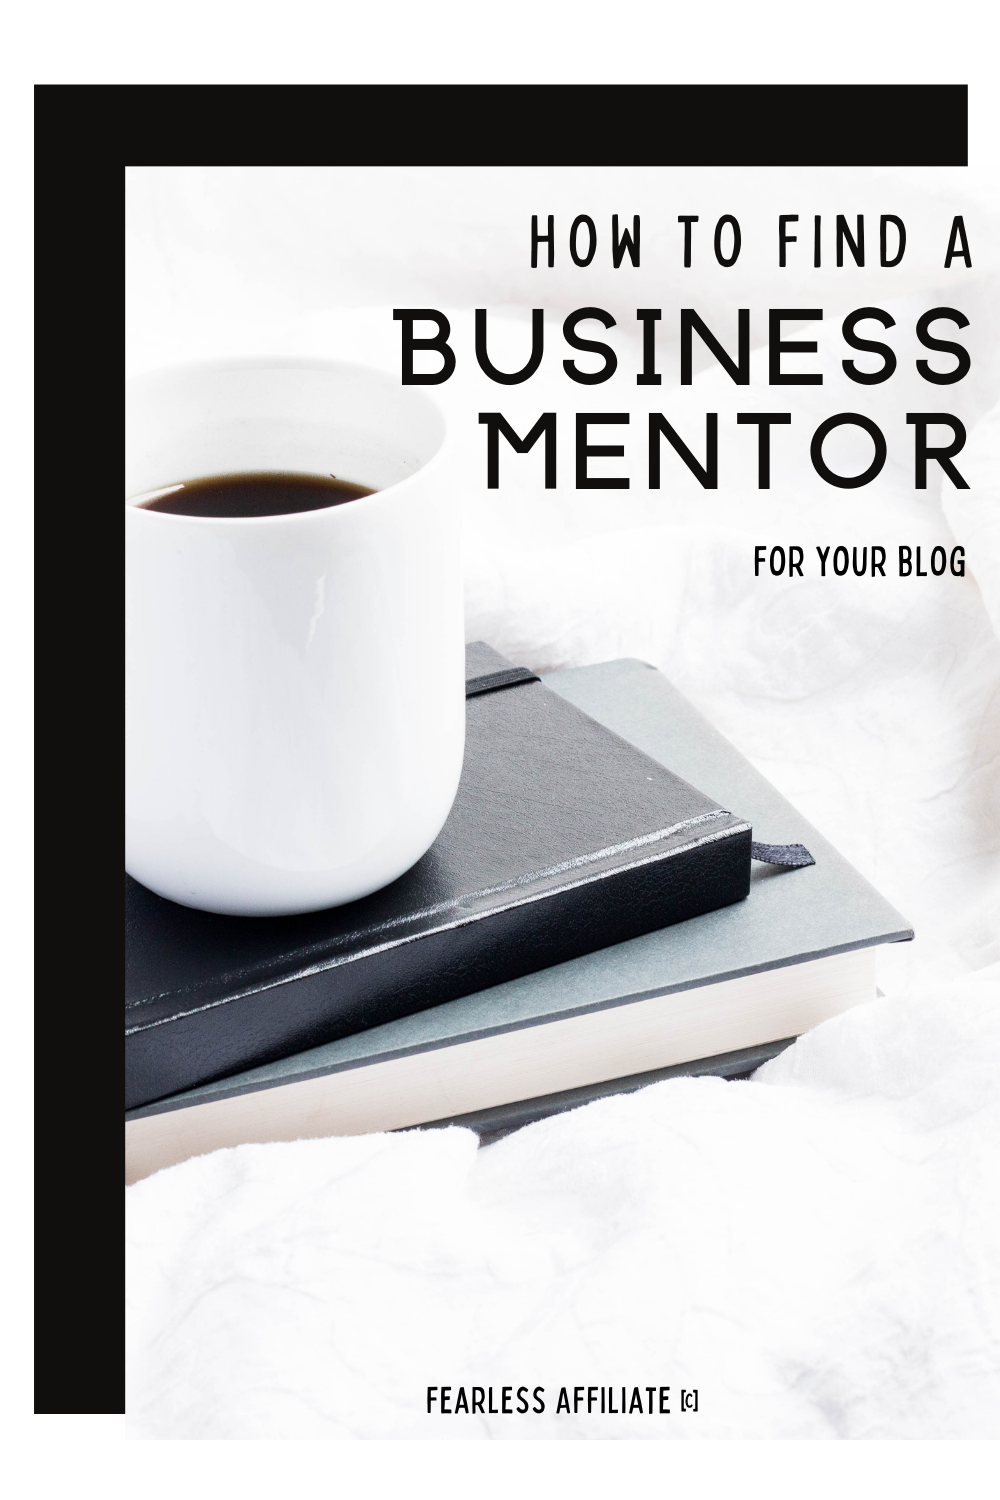 How to Find a Business Mentor for Your Blog